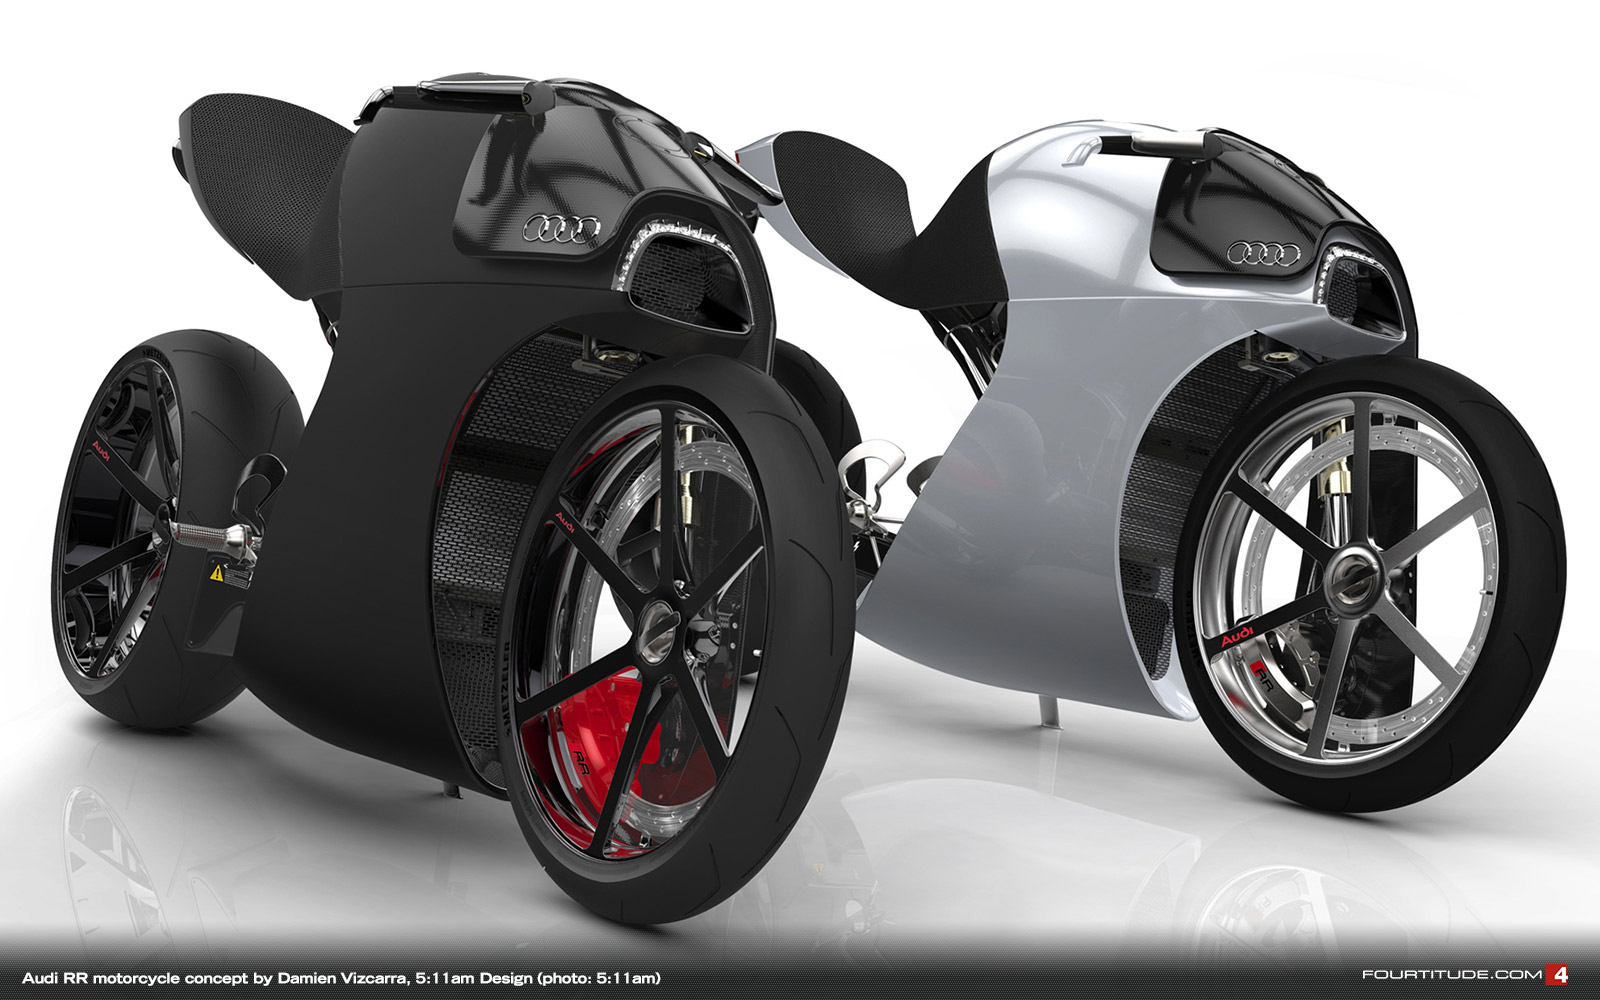 Audi RR Concept Bike Is a Glimpse into the Future ...